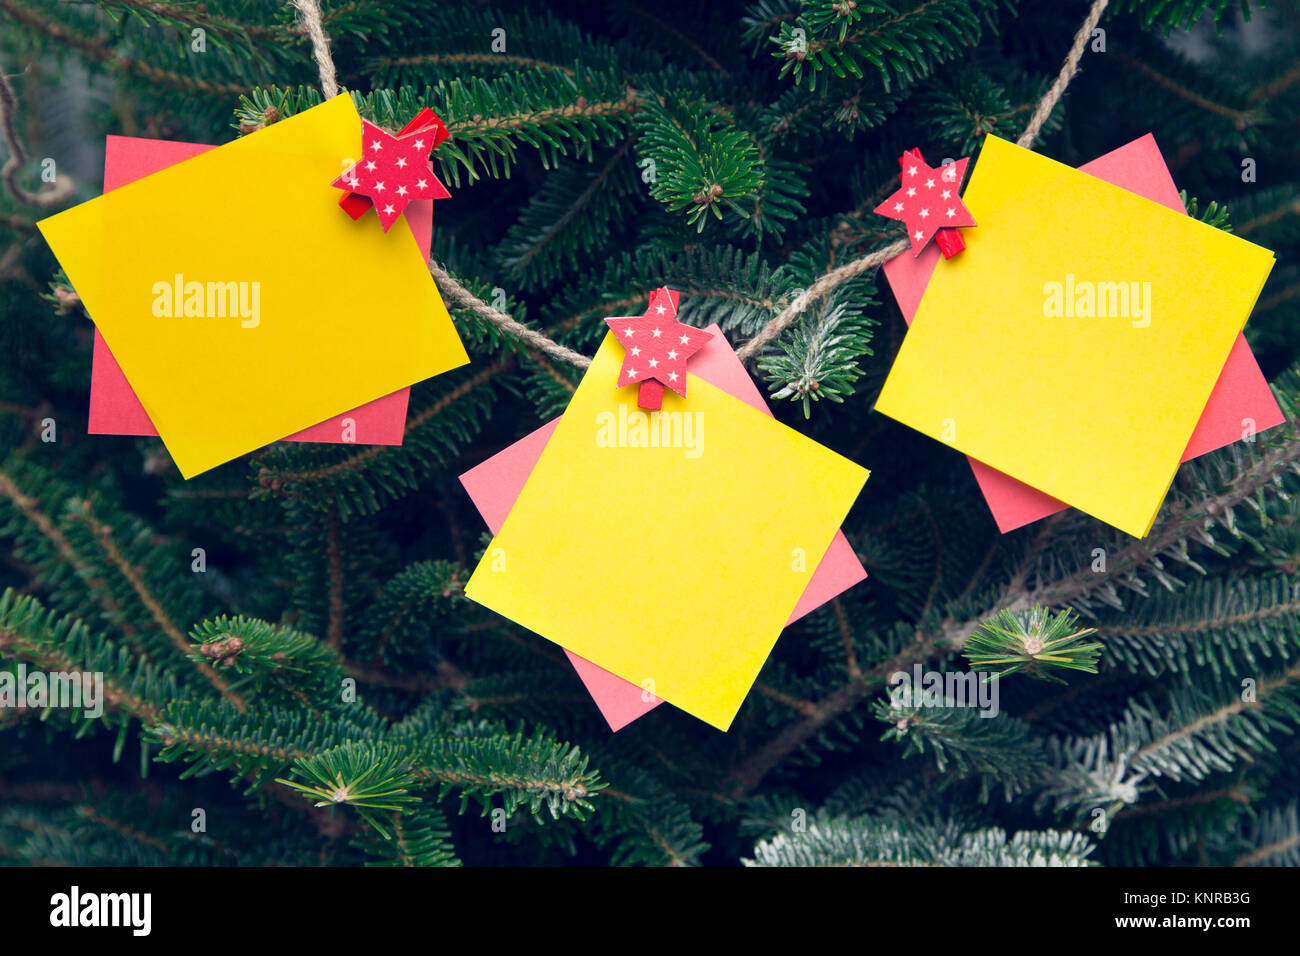 a garland made of pieces of colored paper on a thread christmas or new year background space for your text or product display